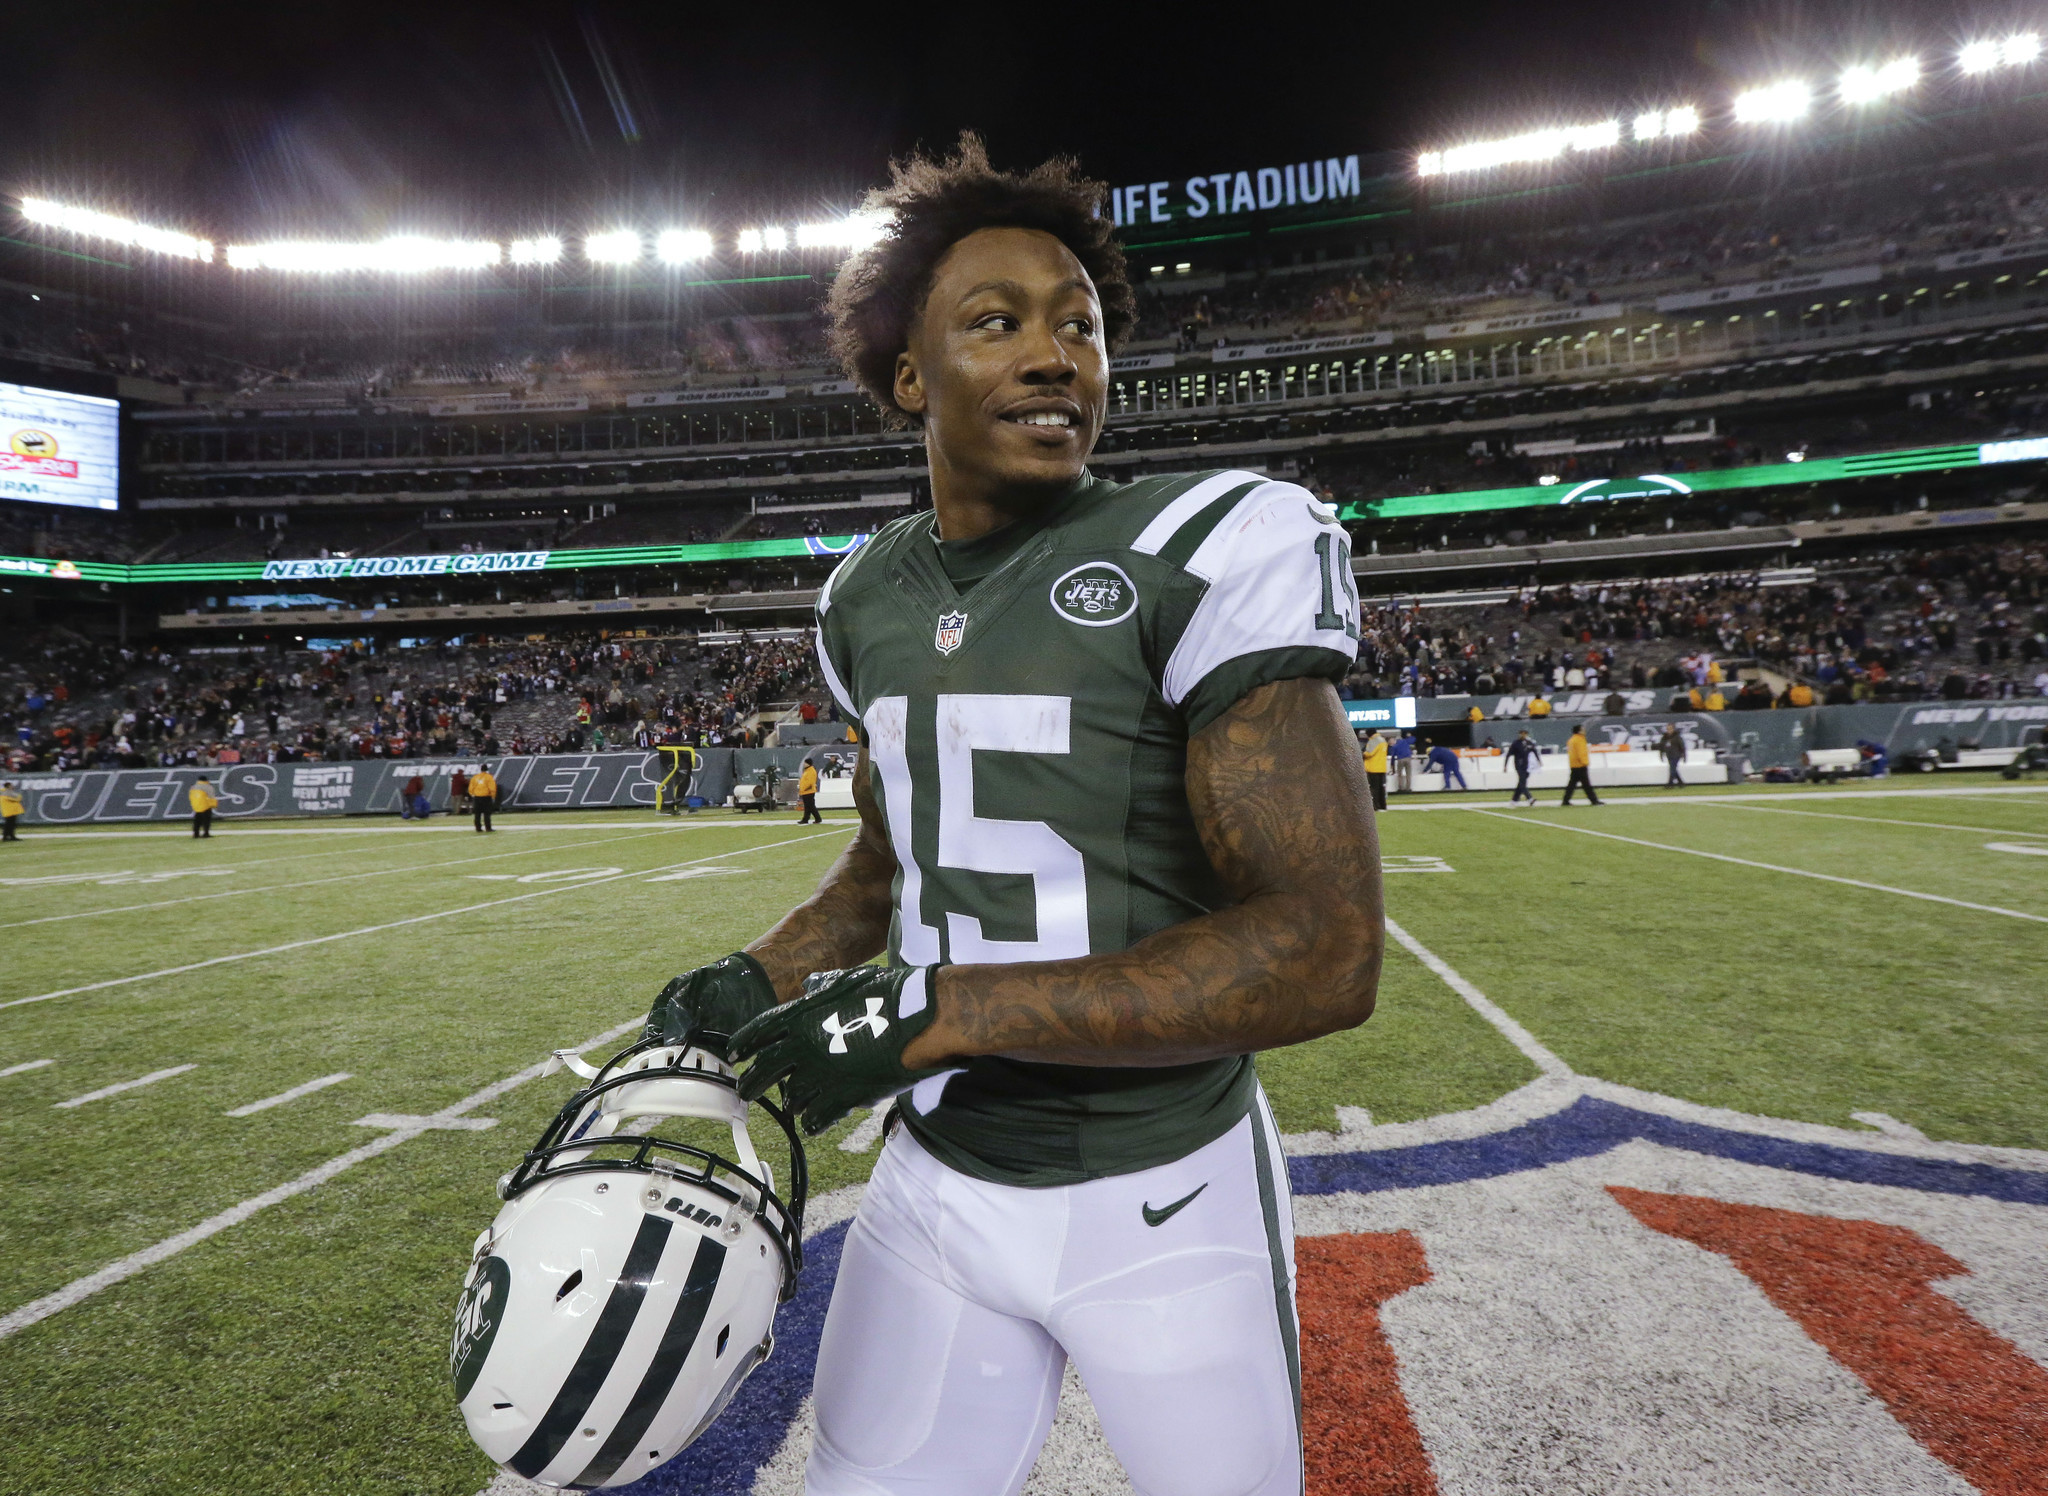 Brandon Marshall will have plenty of teams that will inquire about his services now that he is a free agent.